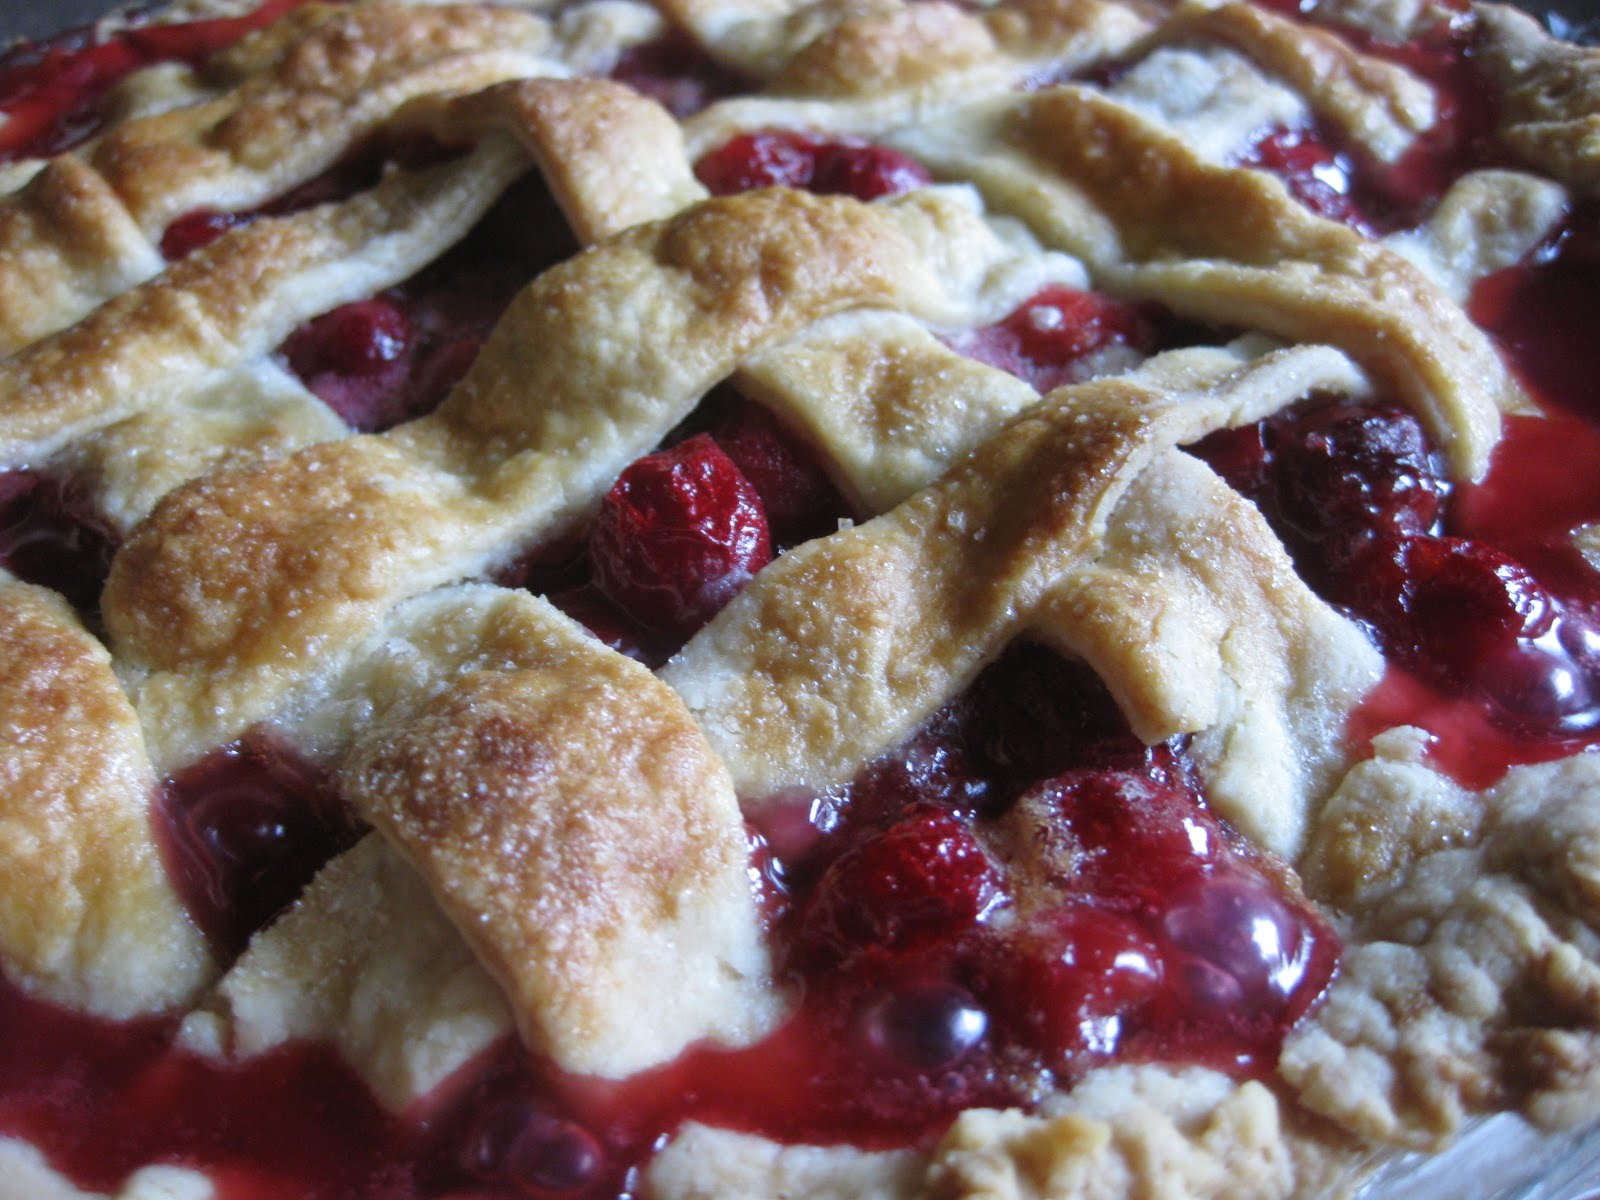 cherry pie with lattice crust classic cherry pie with lattice crust ...